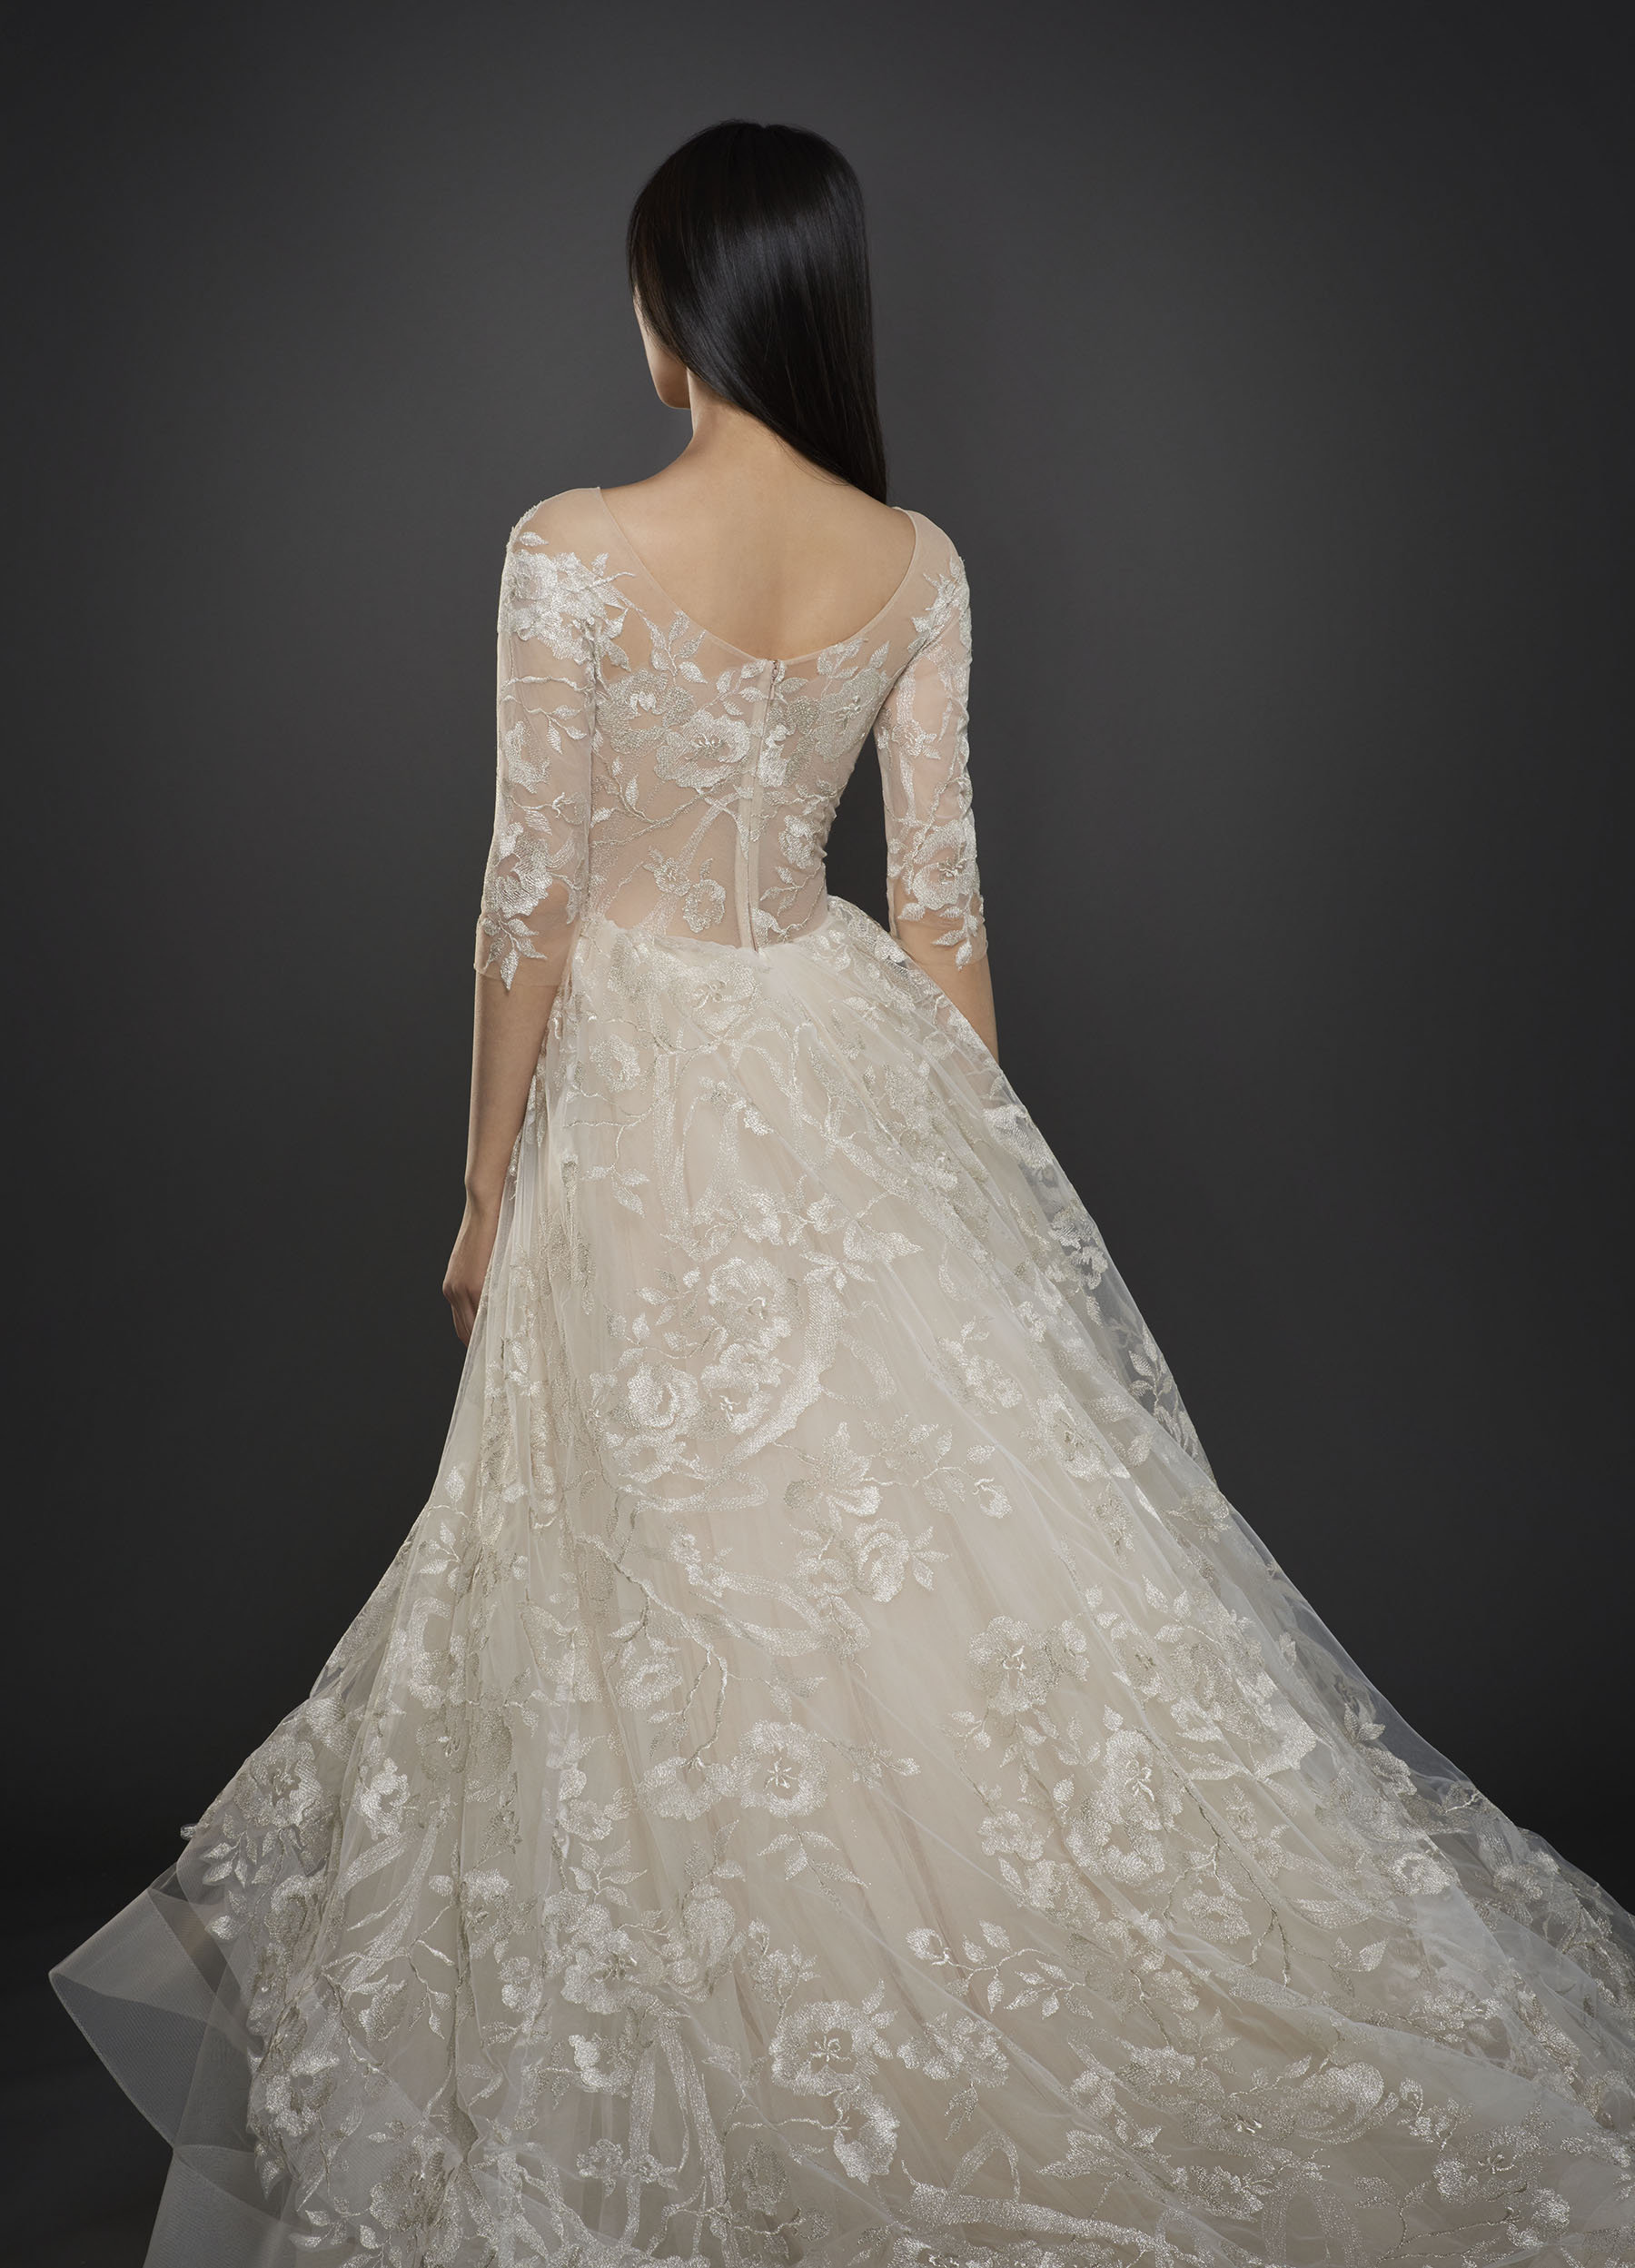 Bridal Gowns and Wedding Dresses by JLM Couture - Style 3758